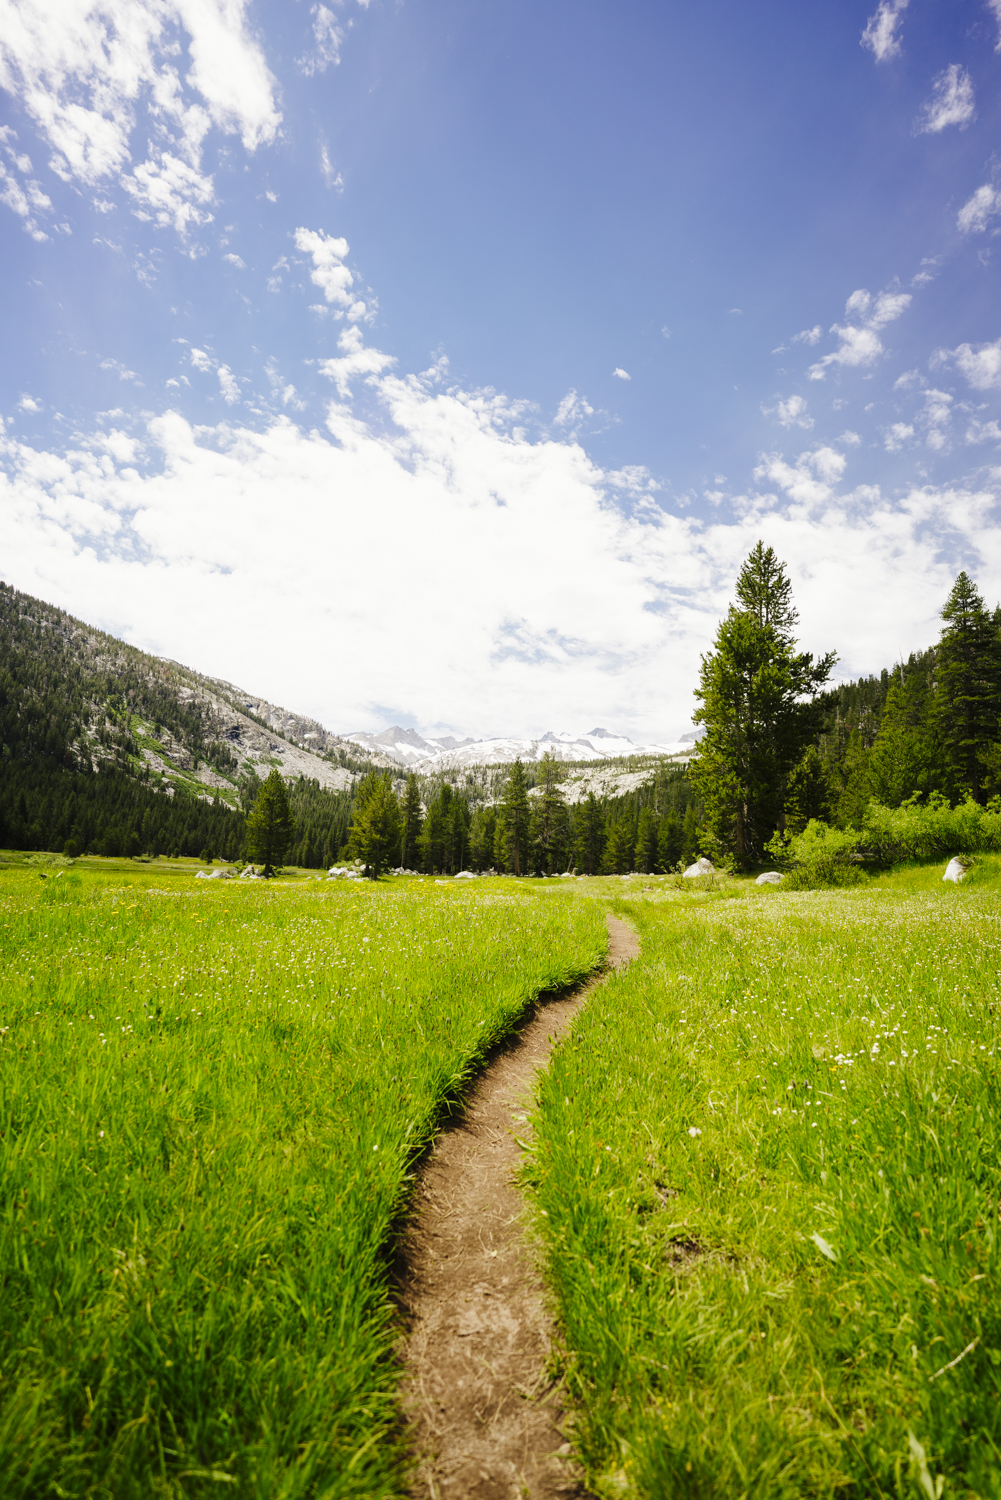 Trail through Lyell Canyon on the edge of Yosemite National Park.